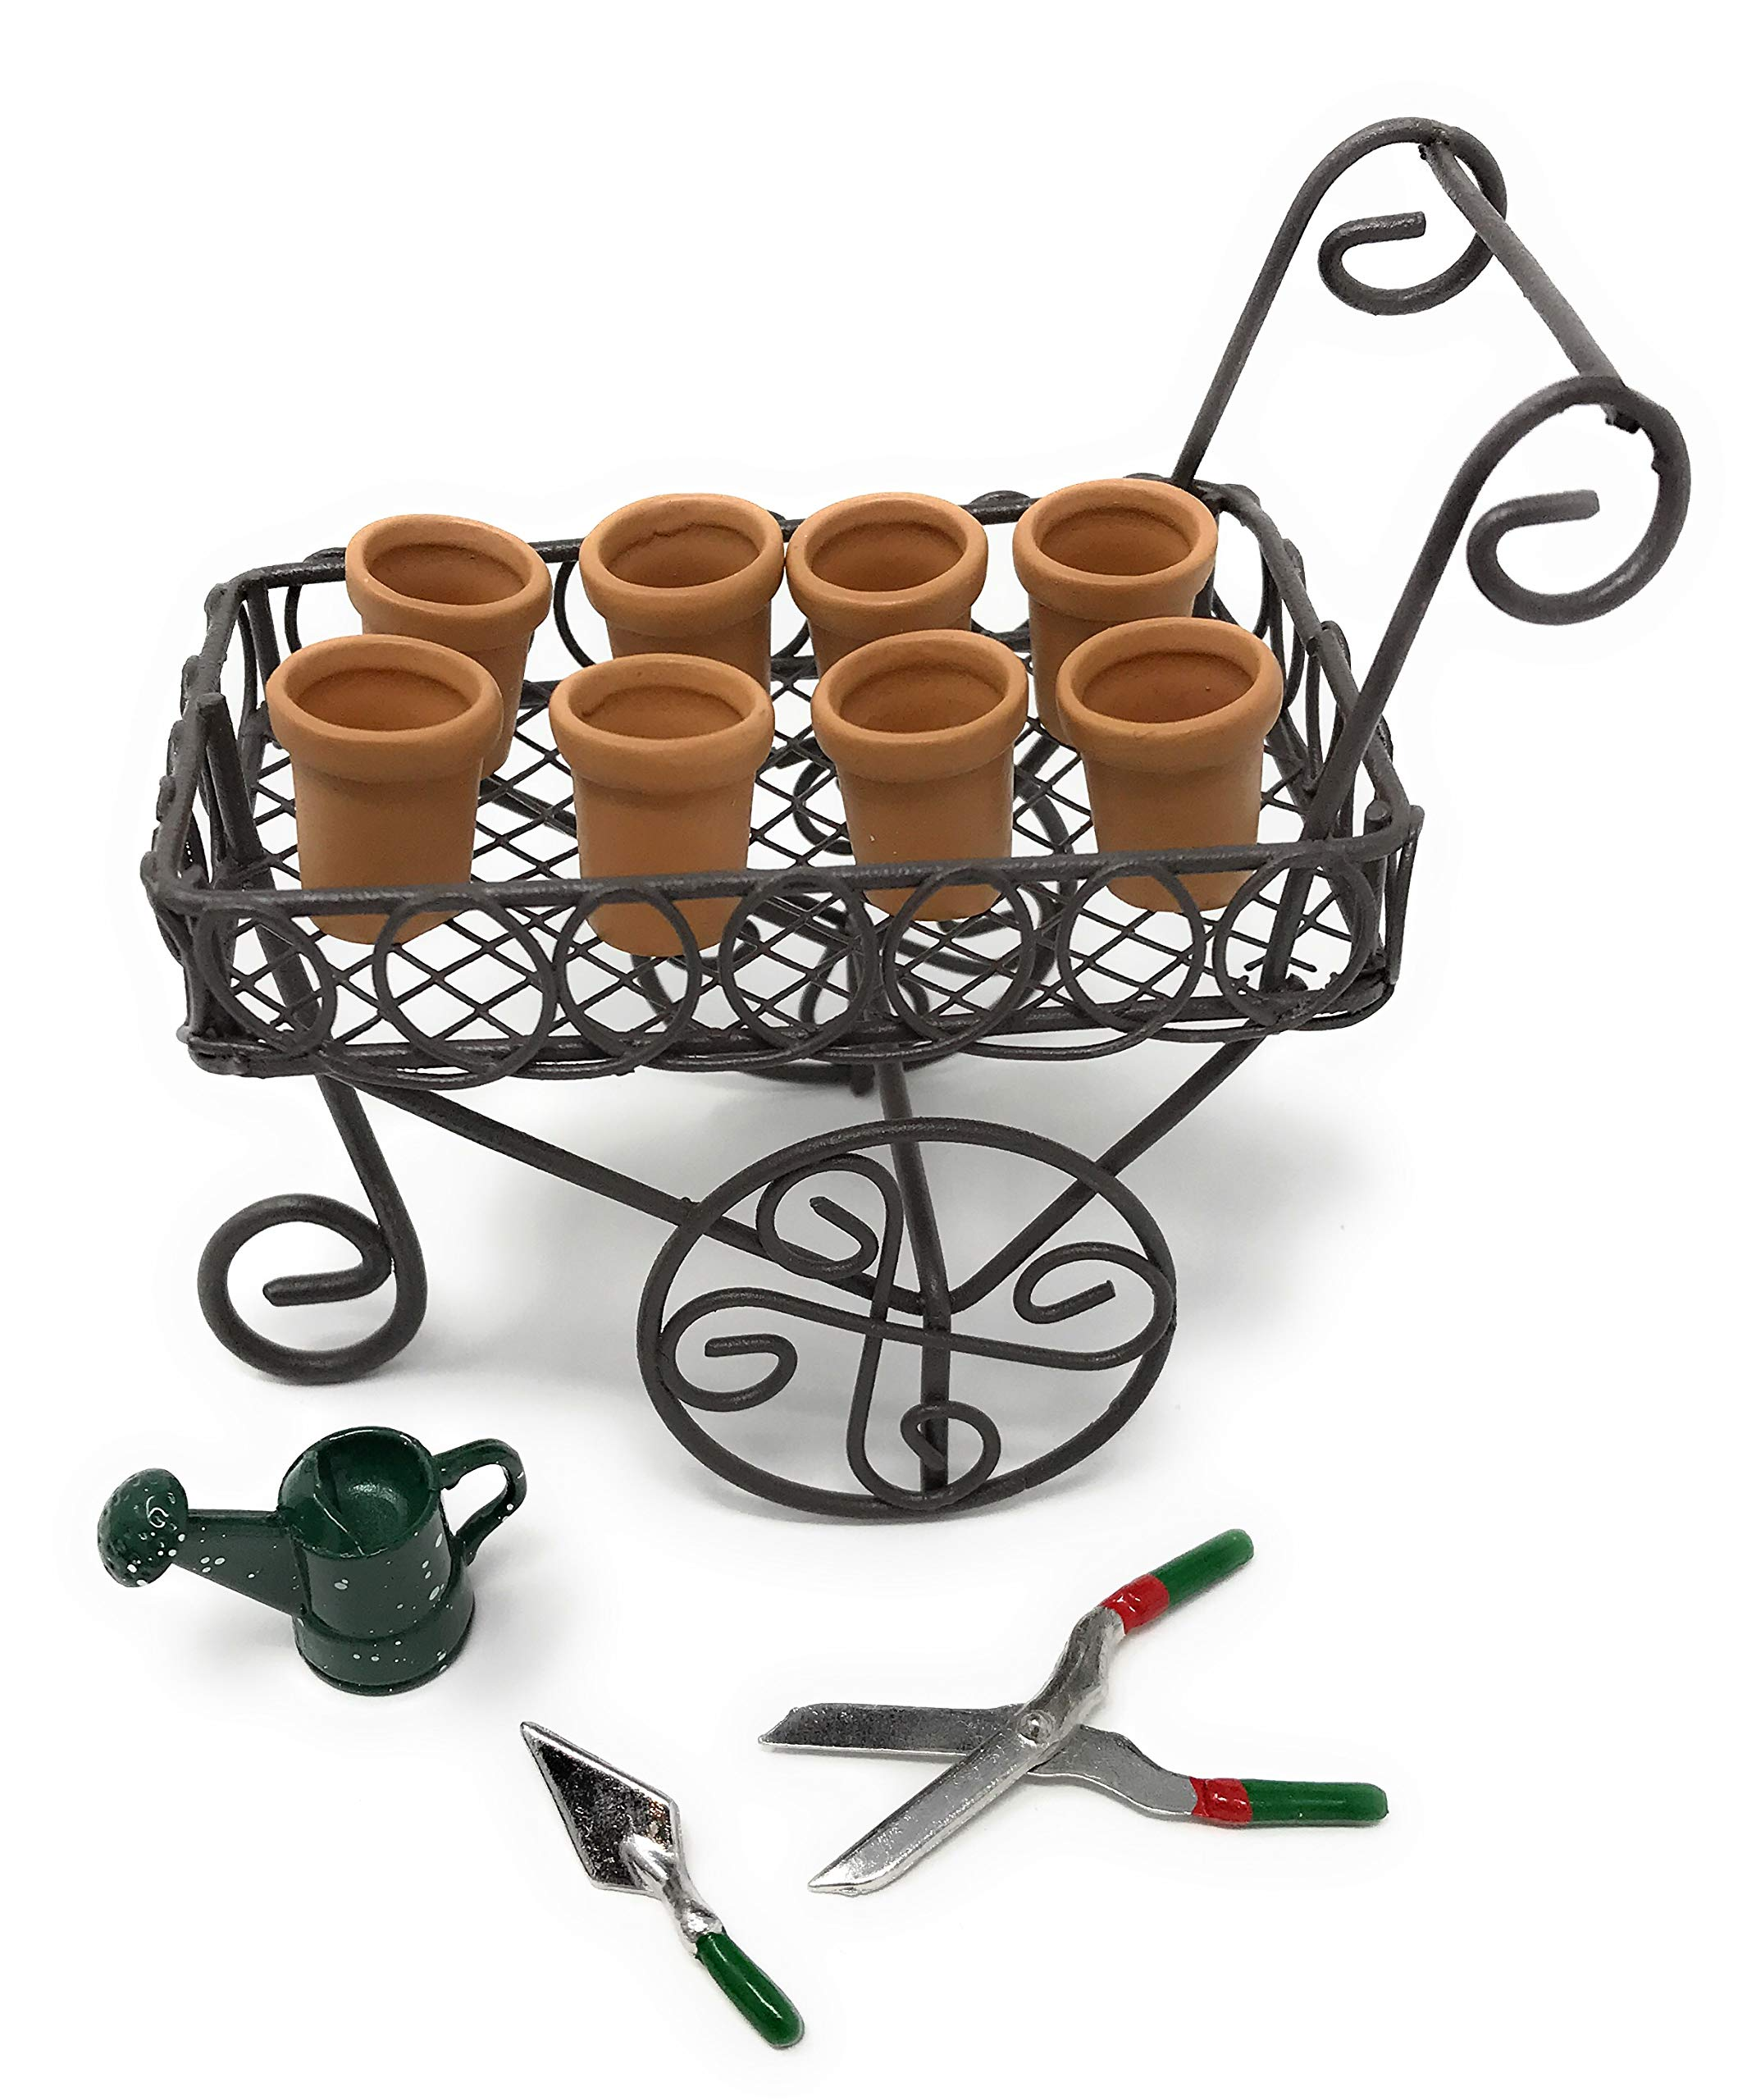 Myoan Brand Miniature Fairy Garden Accessories Bundle with 1 Pull Cart, 8 Resin Clay Pots, 1 Watering Can, 1 Spade and 1 Garden Trimmer (12 Items)